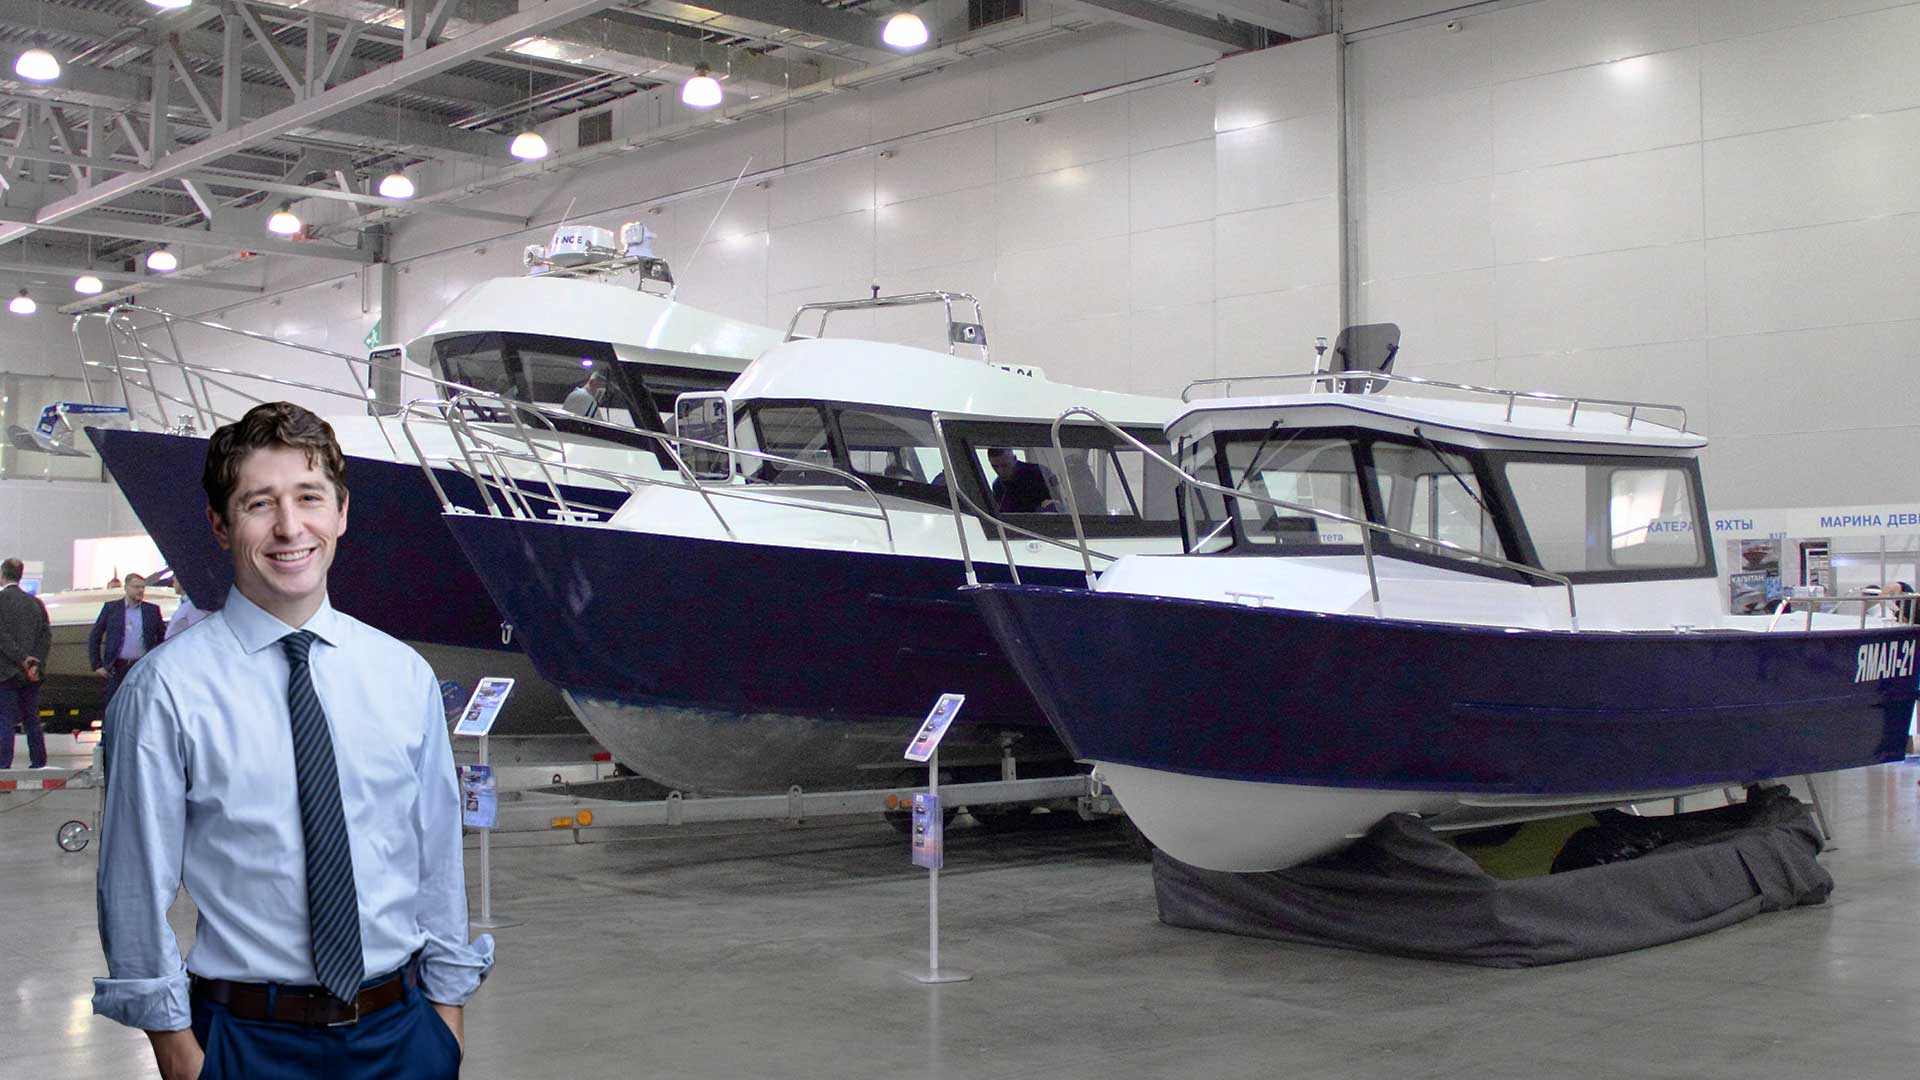 Jacob-Frey-to-appear-in-Minneapolis-Boat-Show-as-resident-dreamboat.jpg